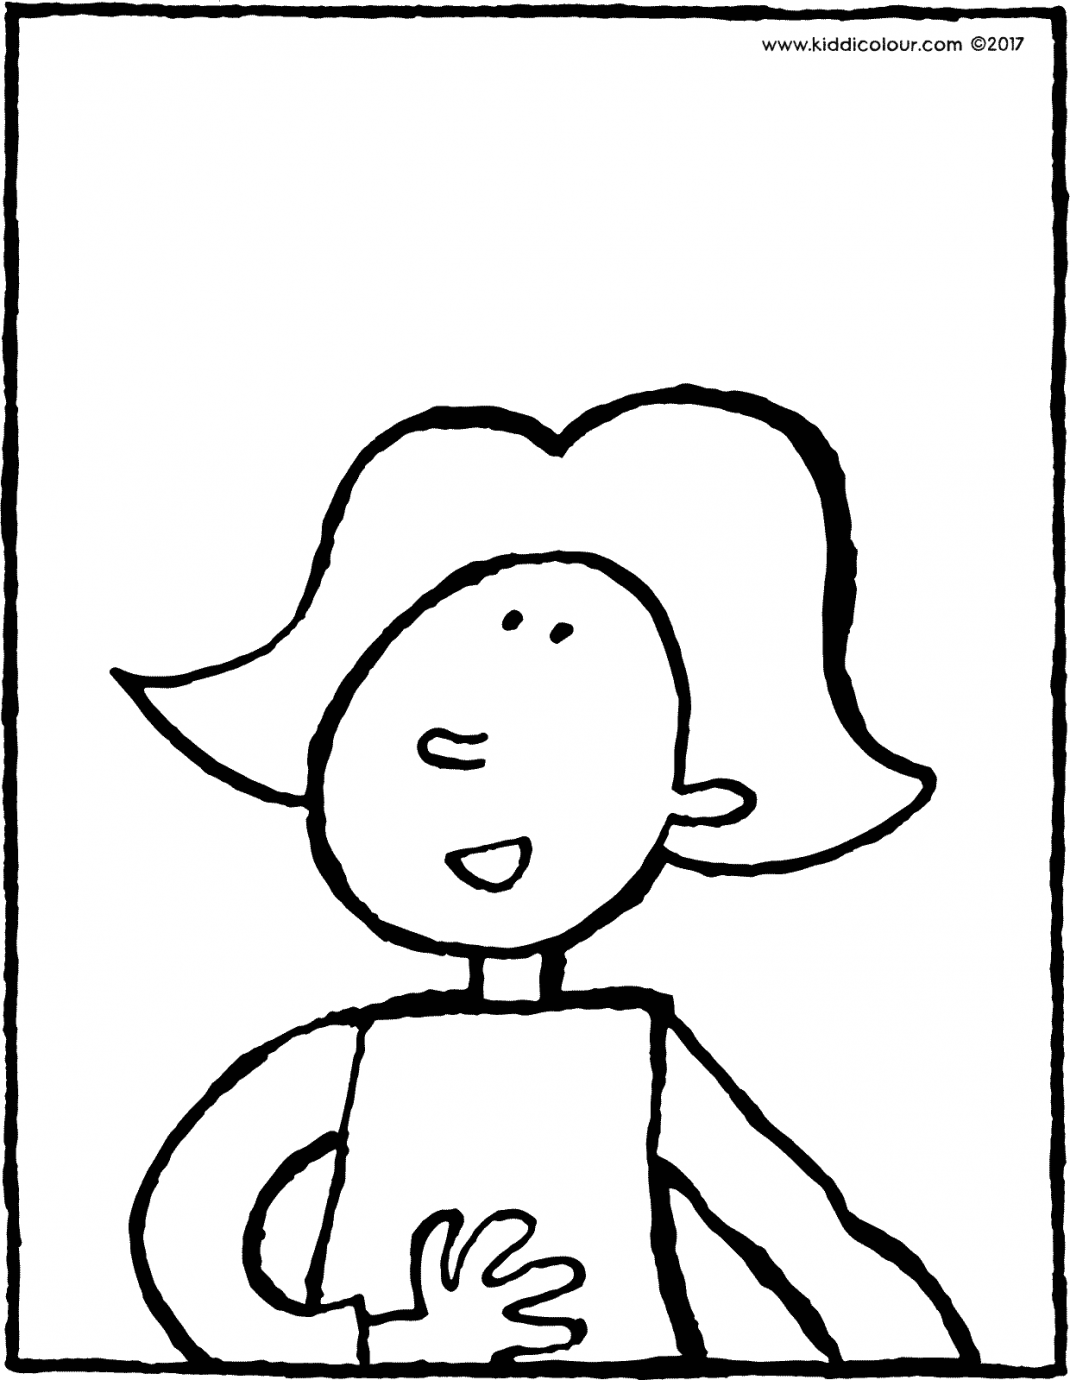 Emma colouring page drawing picture 01V